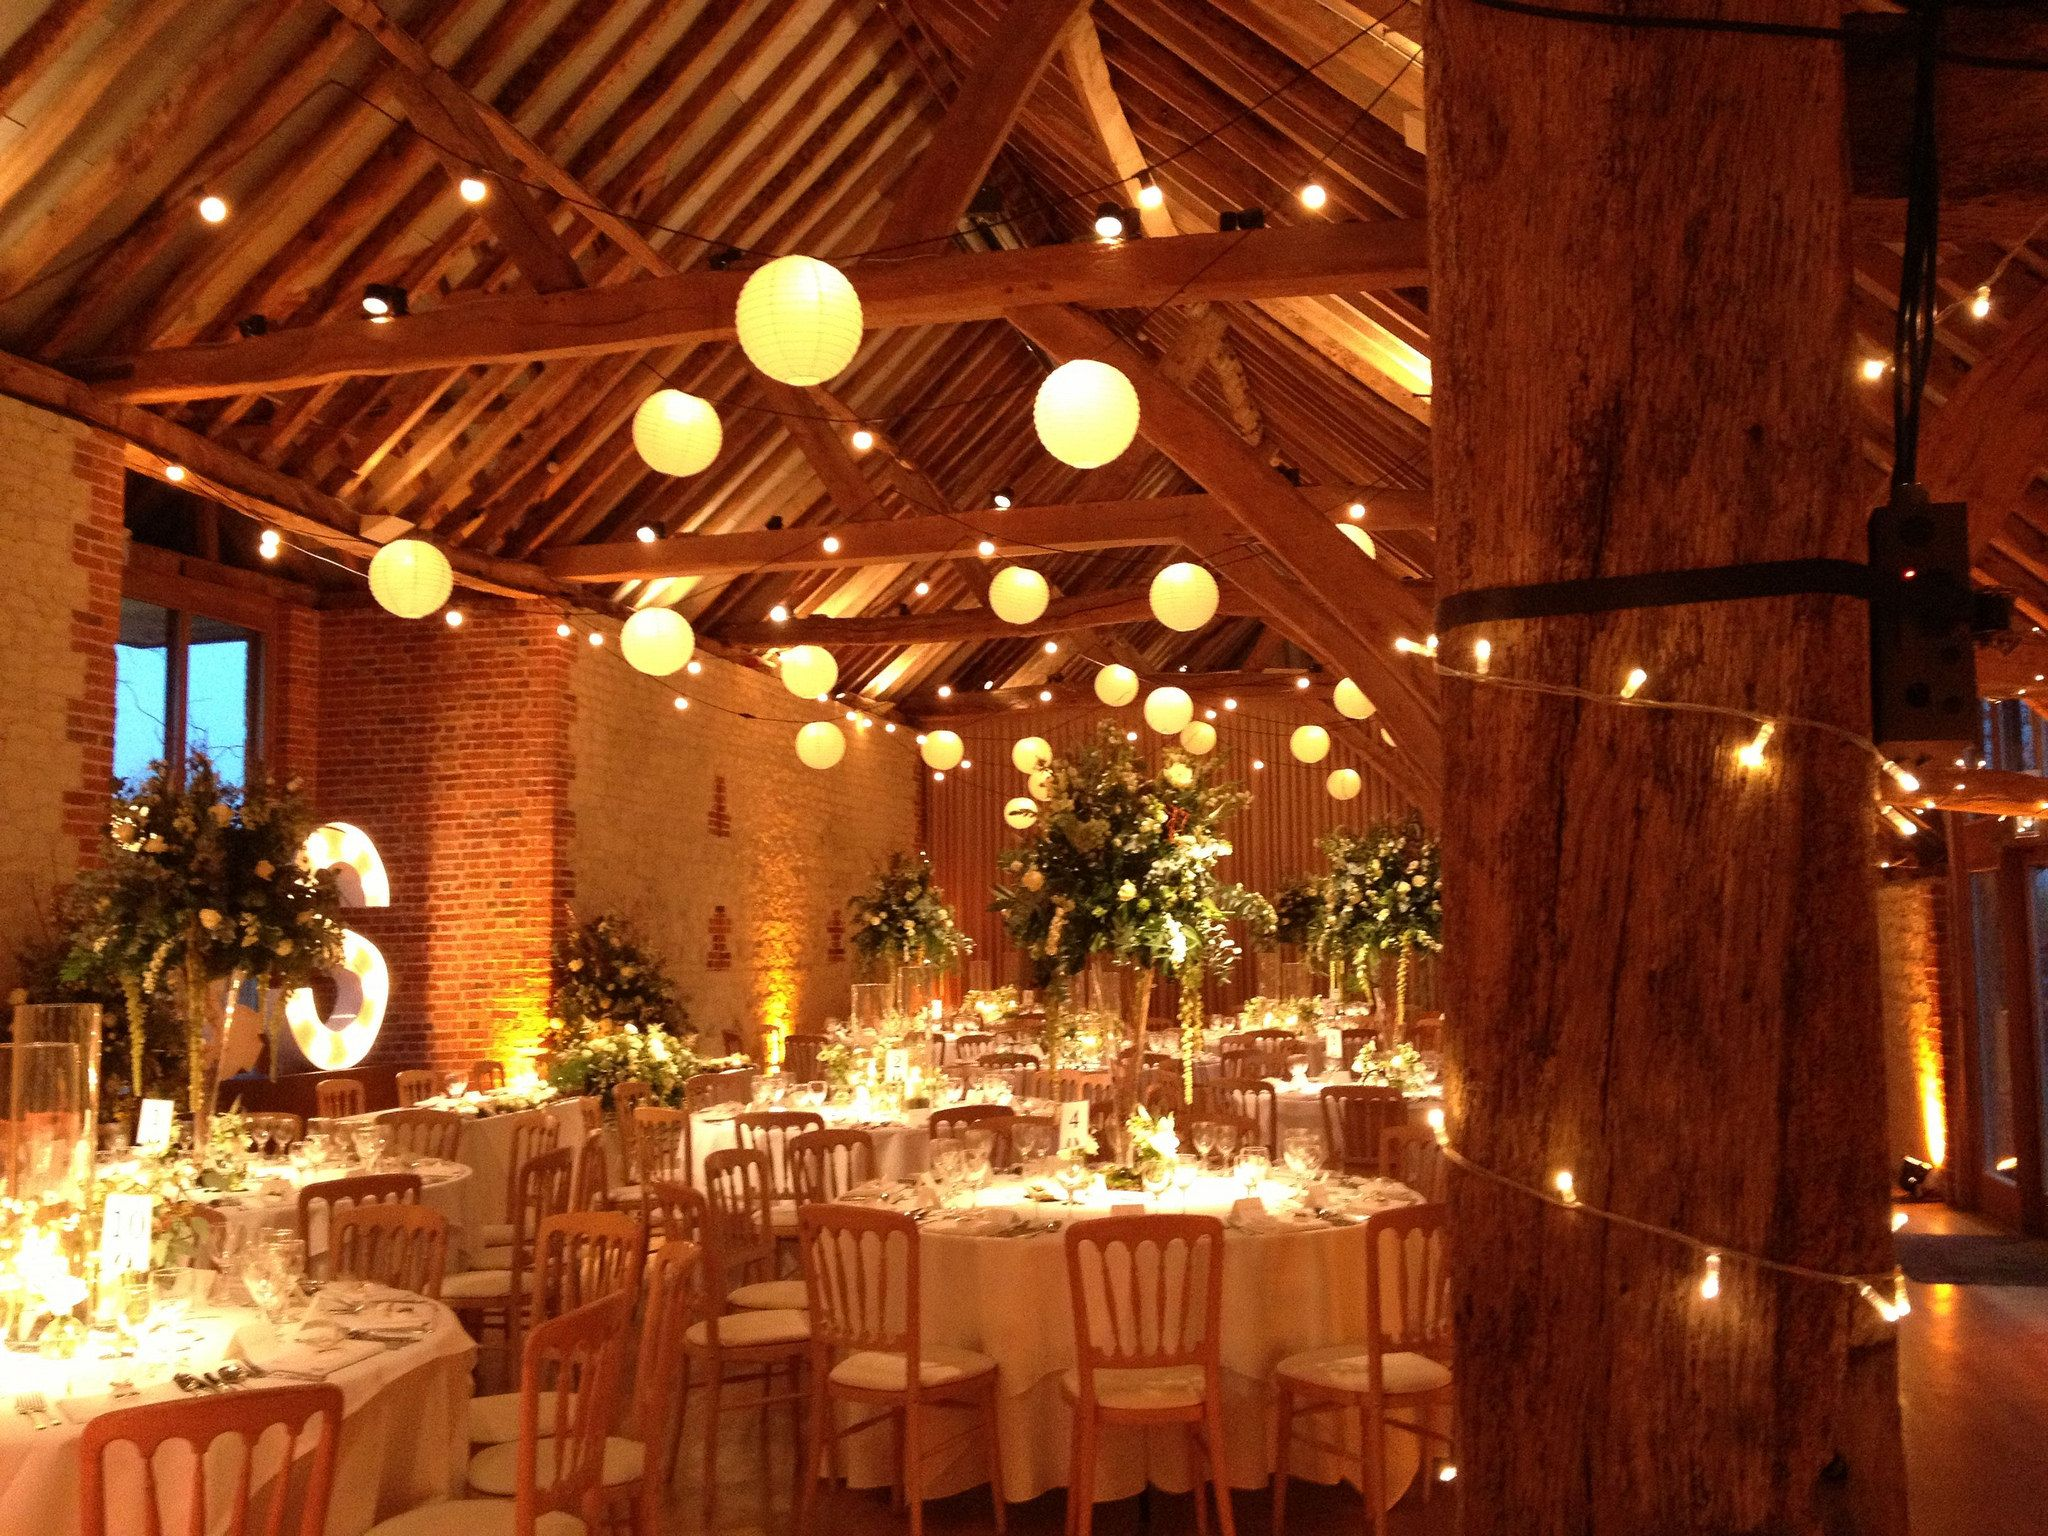 White paper lanterns with lights - Bury Court Barn Festoon Lights And White Paper Lanterns Wall Uplighters In Amber By